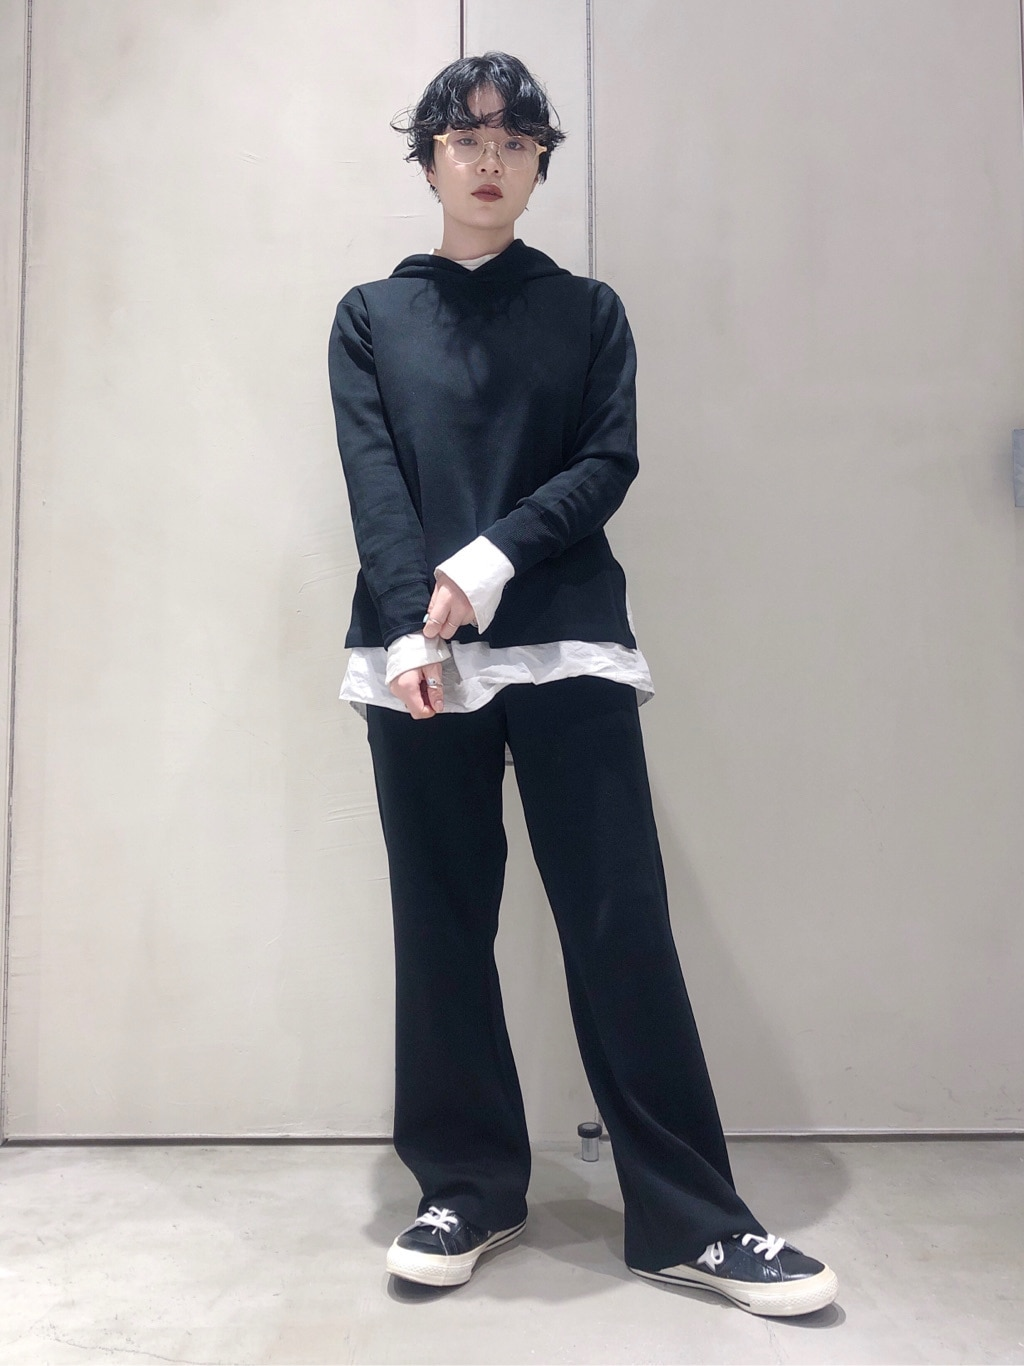 note et silence. ルミネ大宮 身長:155cm 2020.10.19